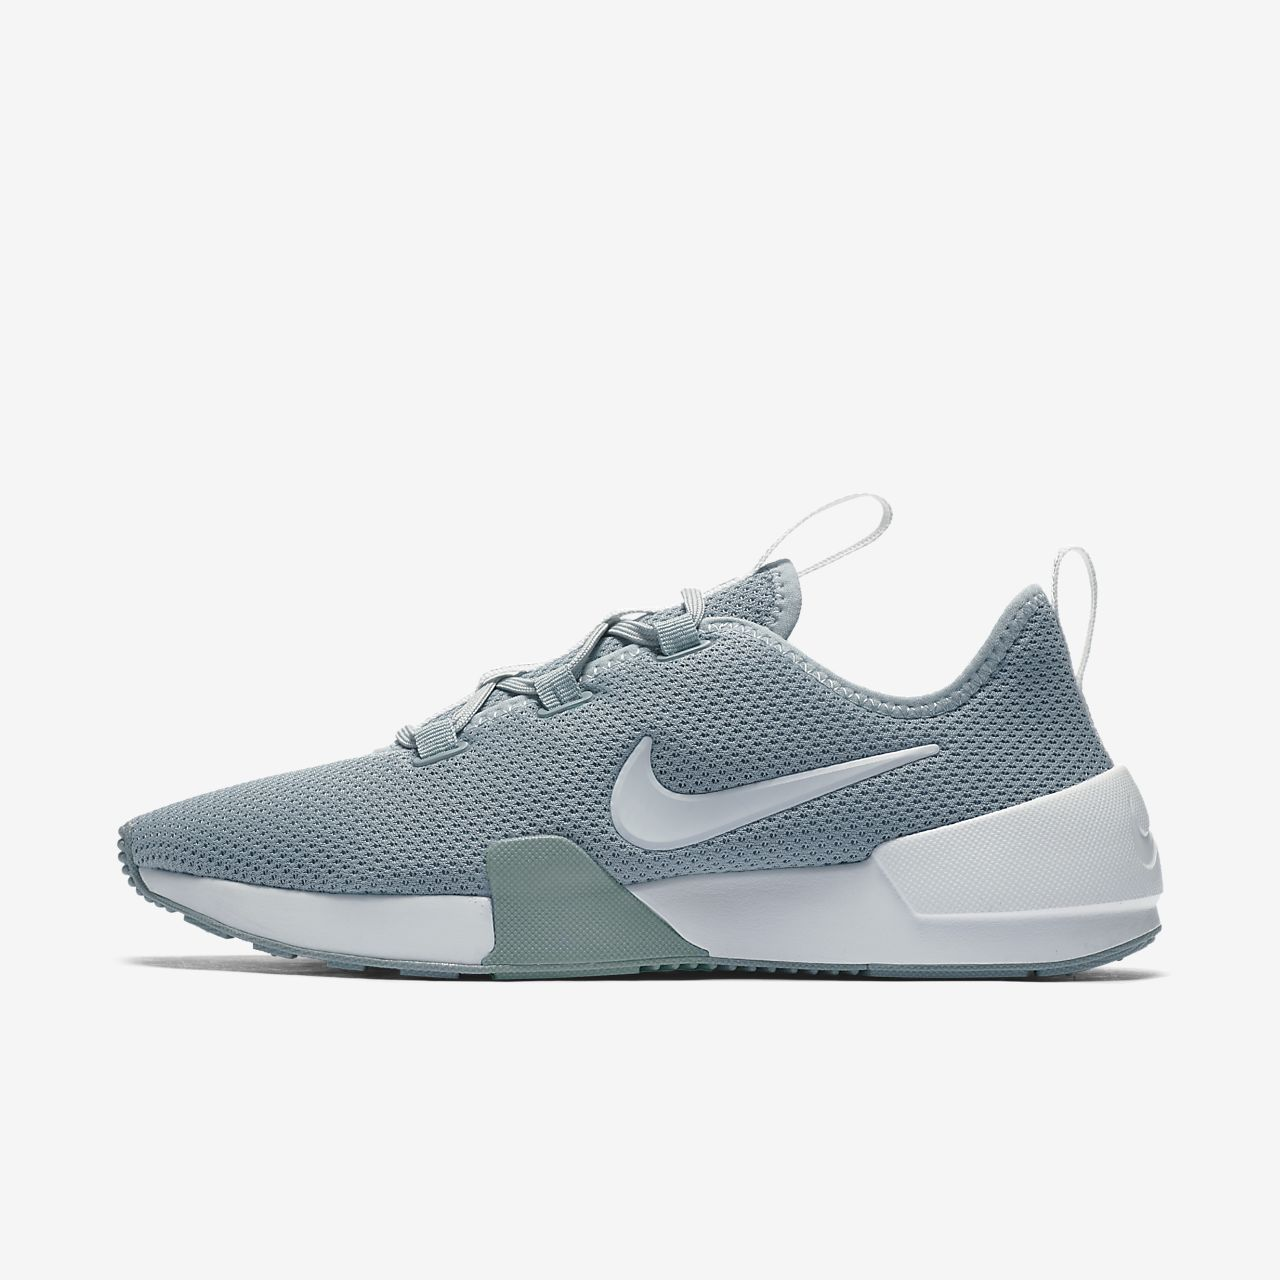 72be4855f37739 Nike Ashin Modern Run Women s Shoe. Nike.com